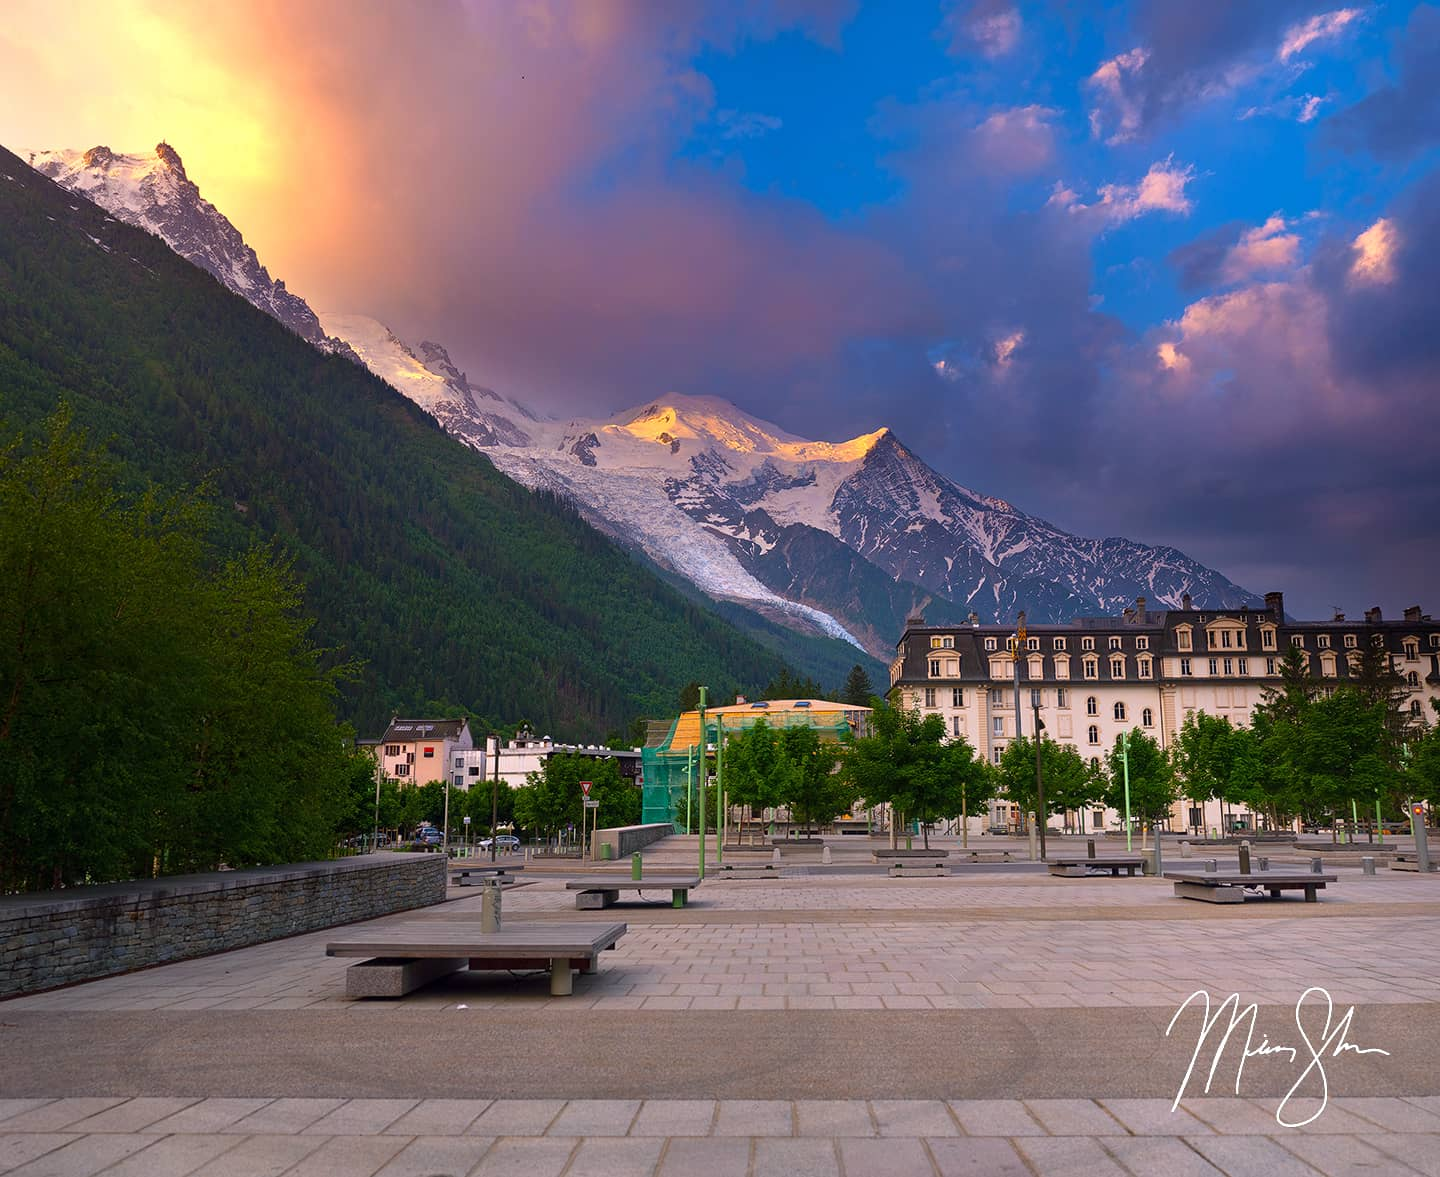 Open edition fine art print of Colorful Chamonix from Mickey Shannon Photography. Location: Chamonix-Mont Blanc, France